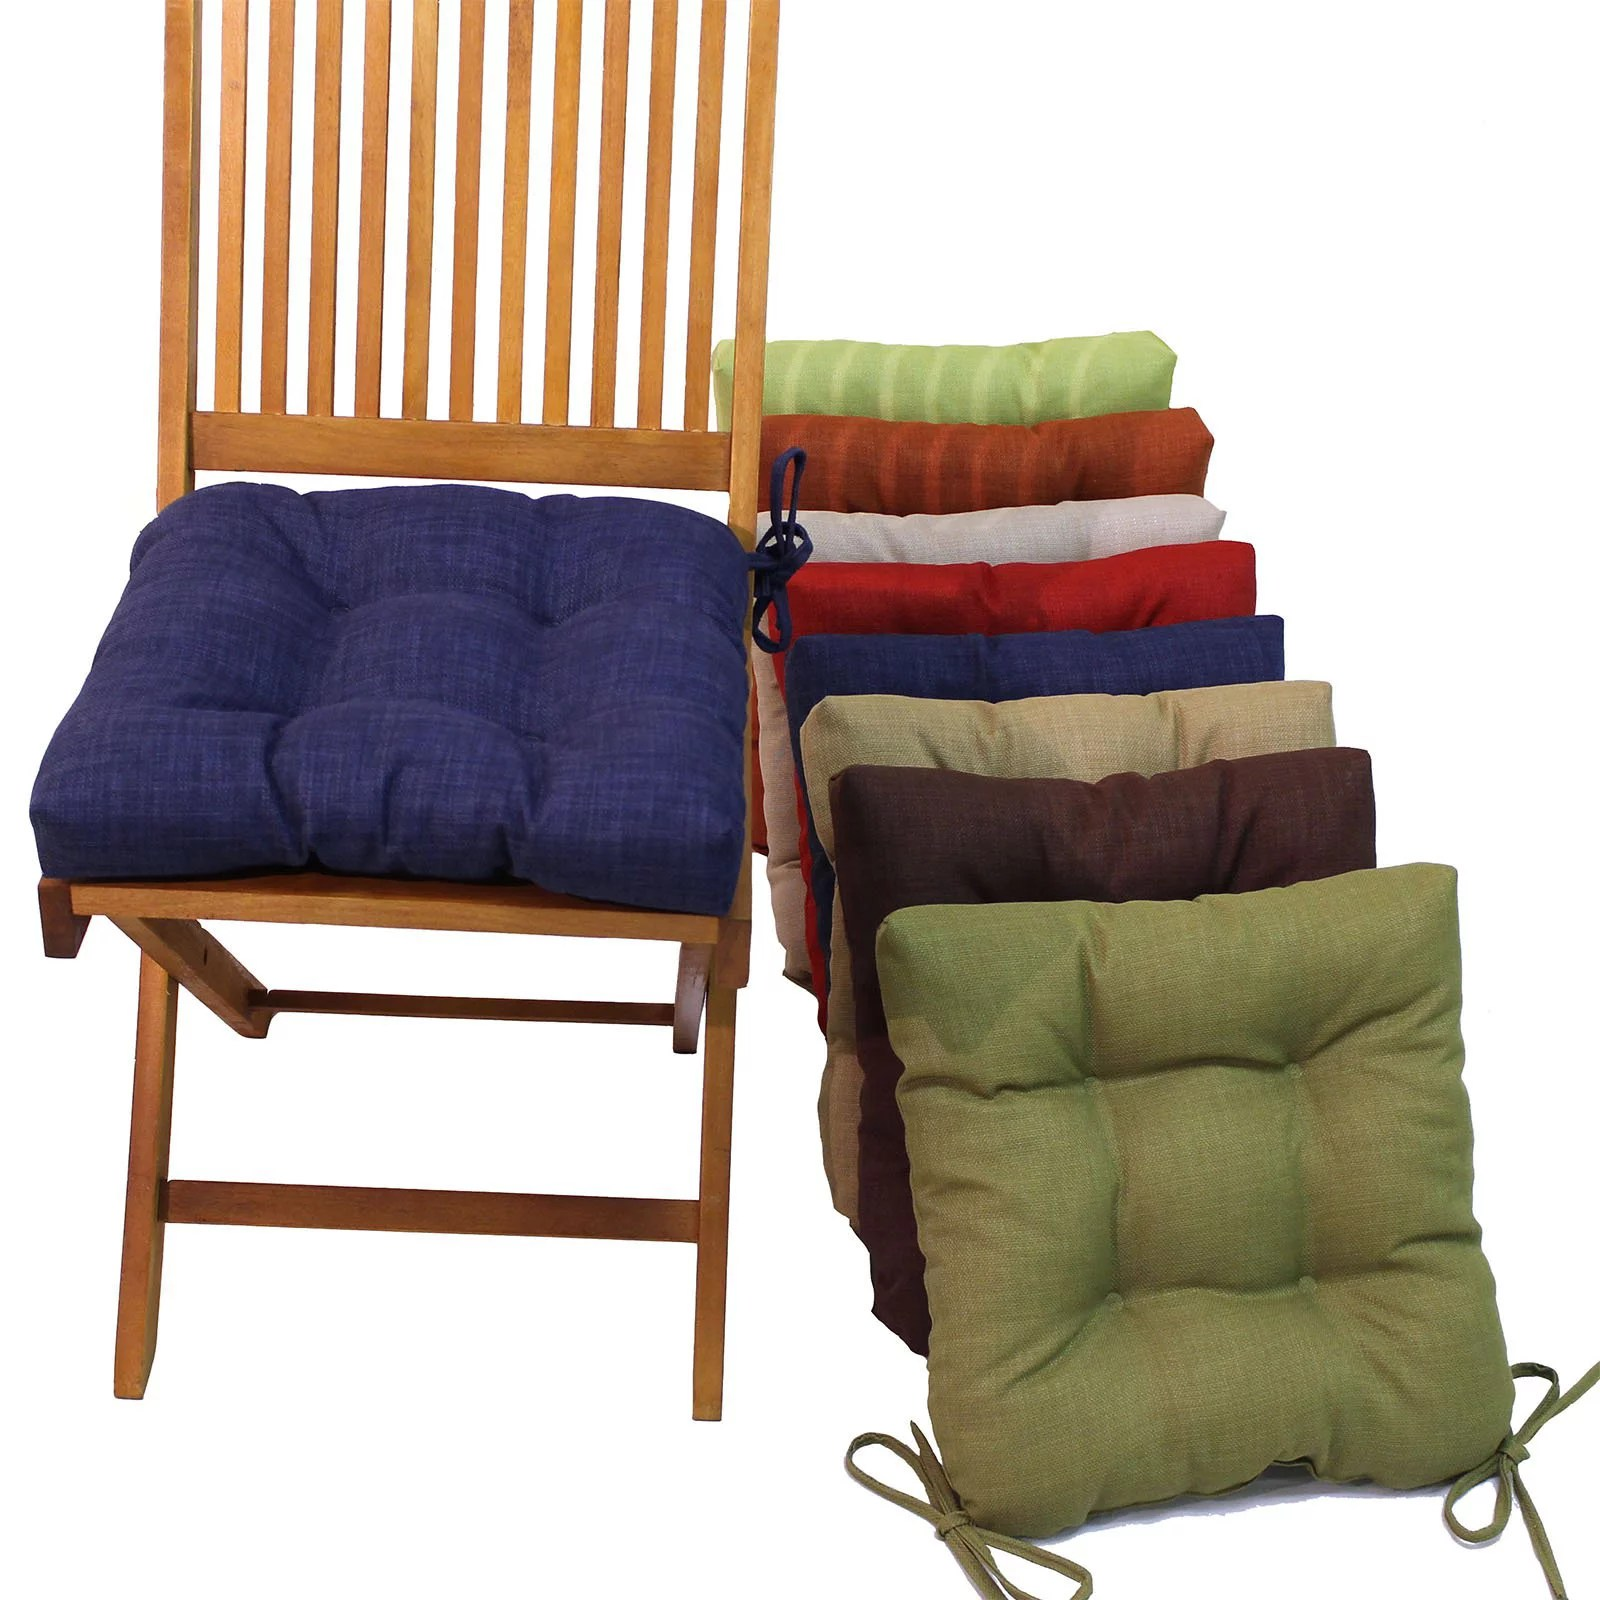 dining room chair pillows coaster chairs blazing needles 16 in square outdoor cushions with ties set of 4 walmart com